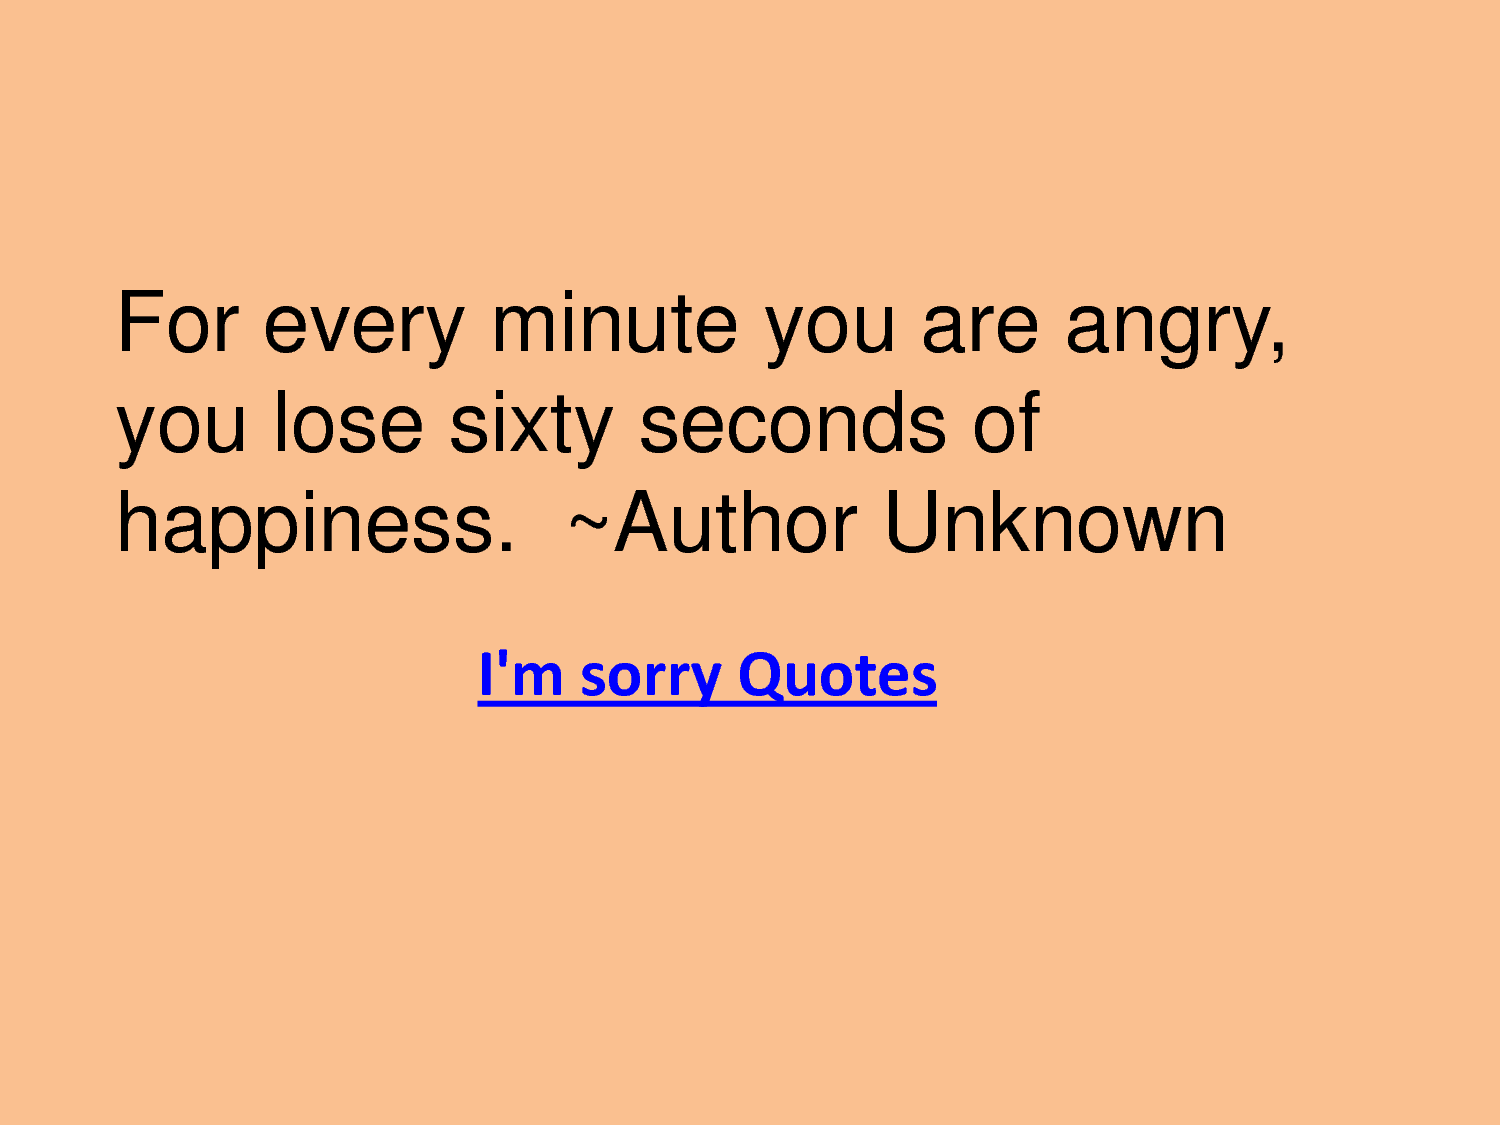 Quotes saying im sorry 26 Sorry